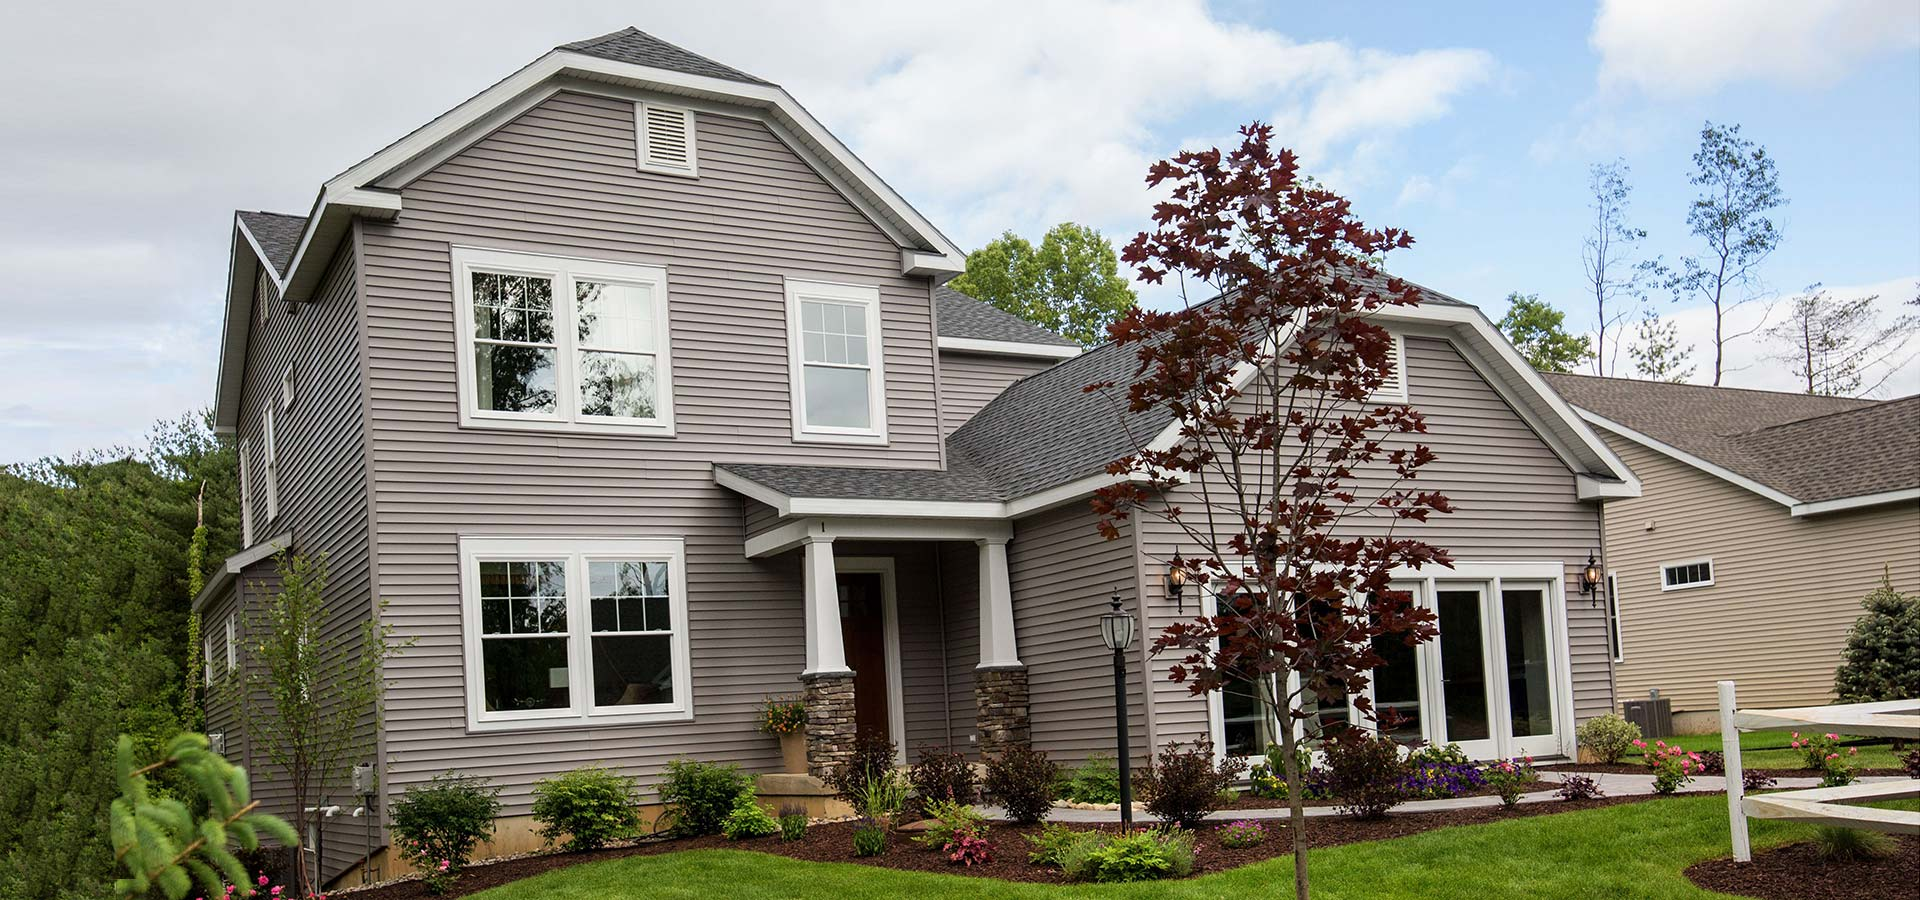 Featured New Home for Sale by Michaels Group Homes